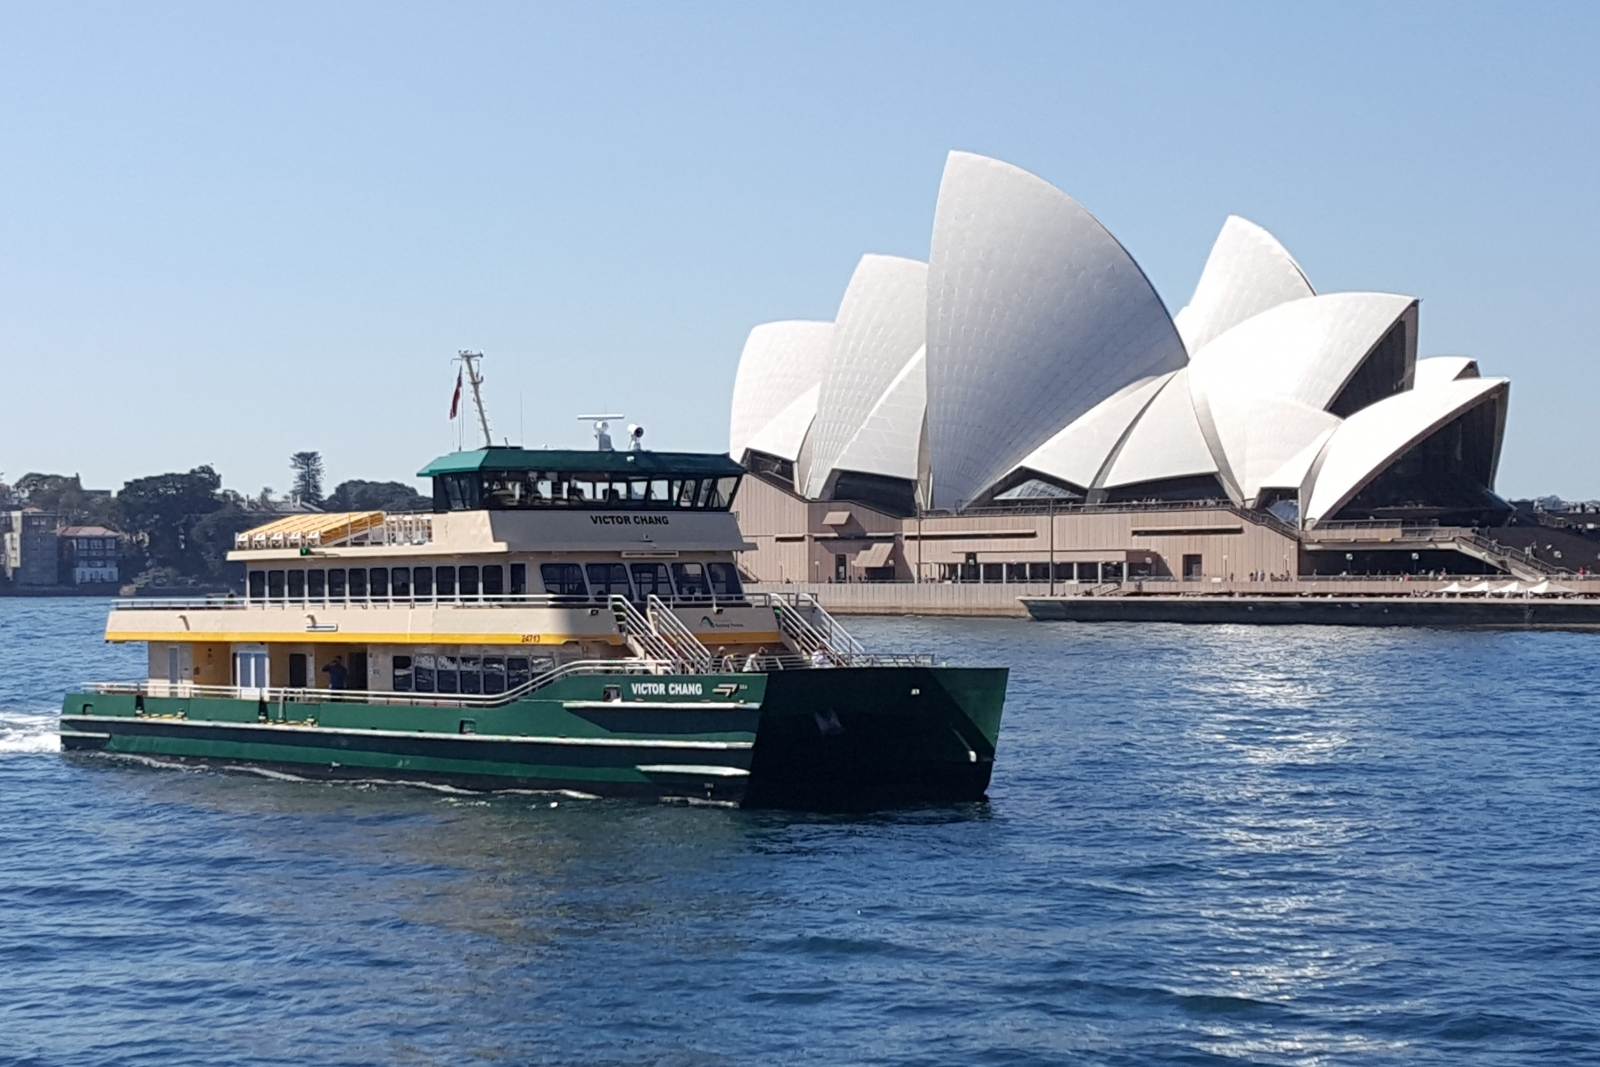 Report finds that Australians didn't vote for Ferry McFerryface